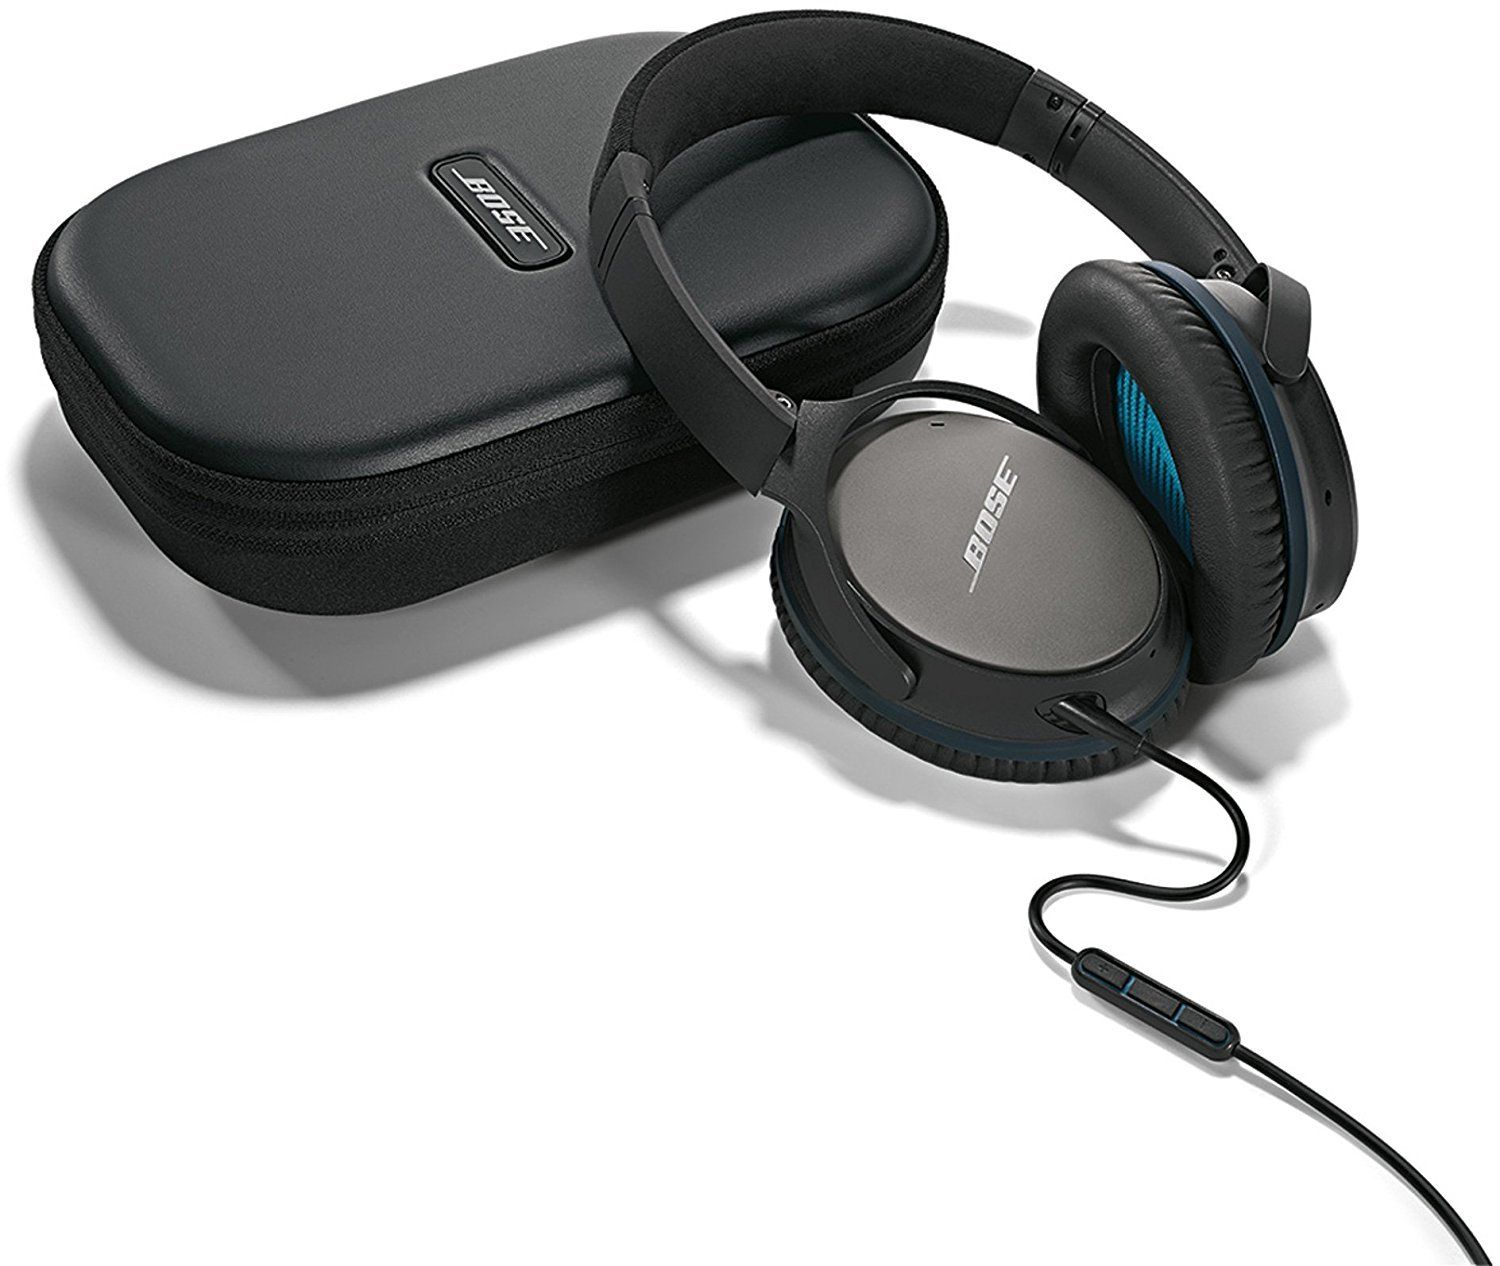 Bose Quietcomfort 25 Noise Cancelling Headphones Samsung And Android Black Best Noise Cancelling Headphones Noise Cancelling Bose Headphones